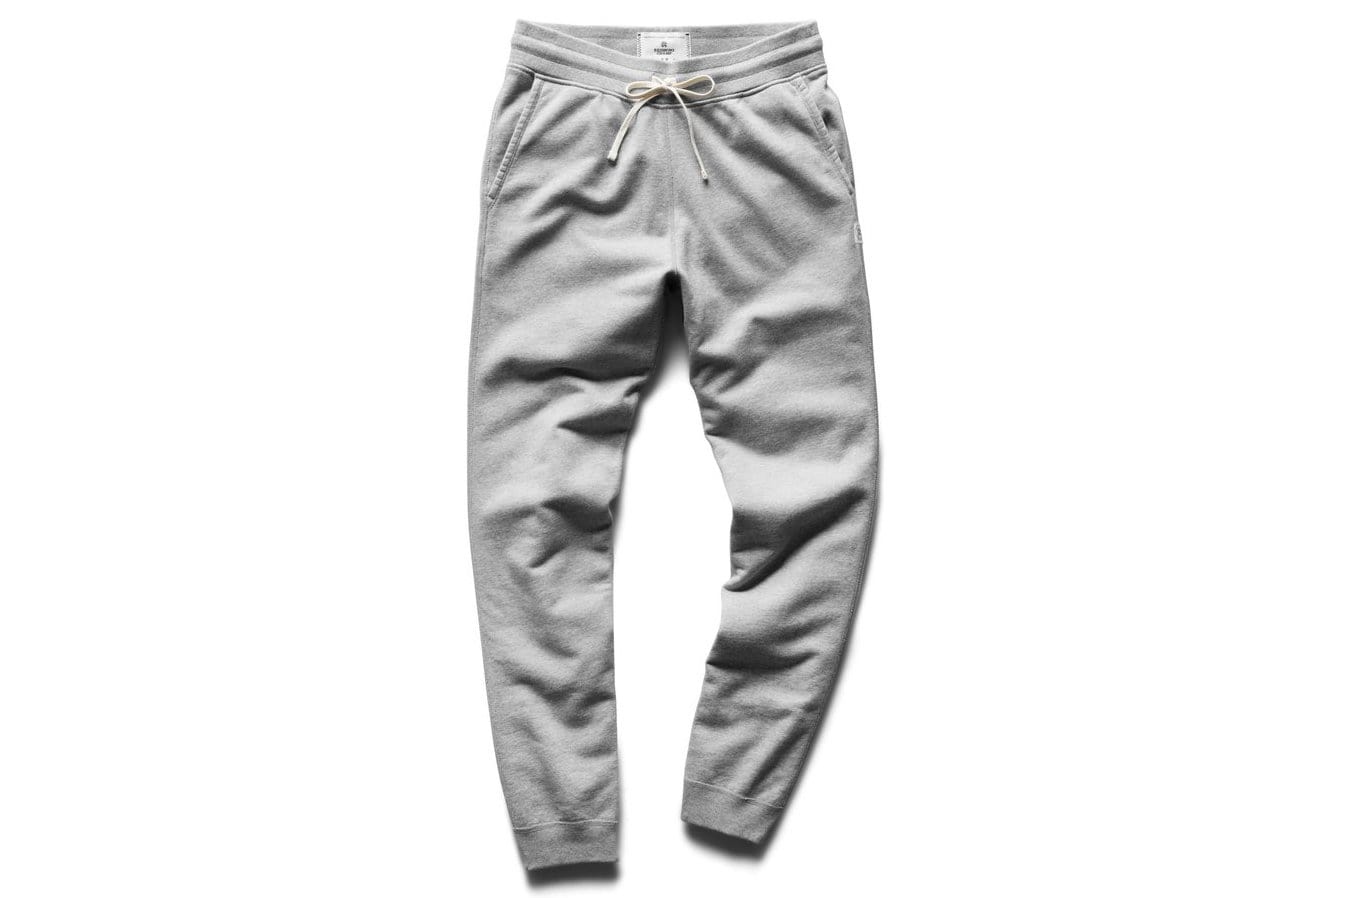 MID WT TERRY SLIM SWEATPANT H.GREY MENS SOFTGOODS REIGNING CHAMP H.GREY S RC-5075